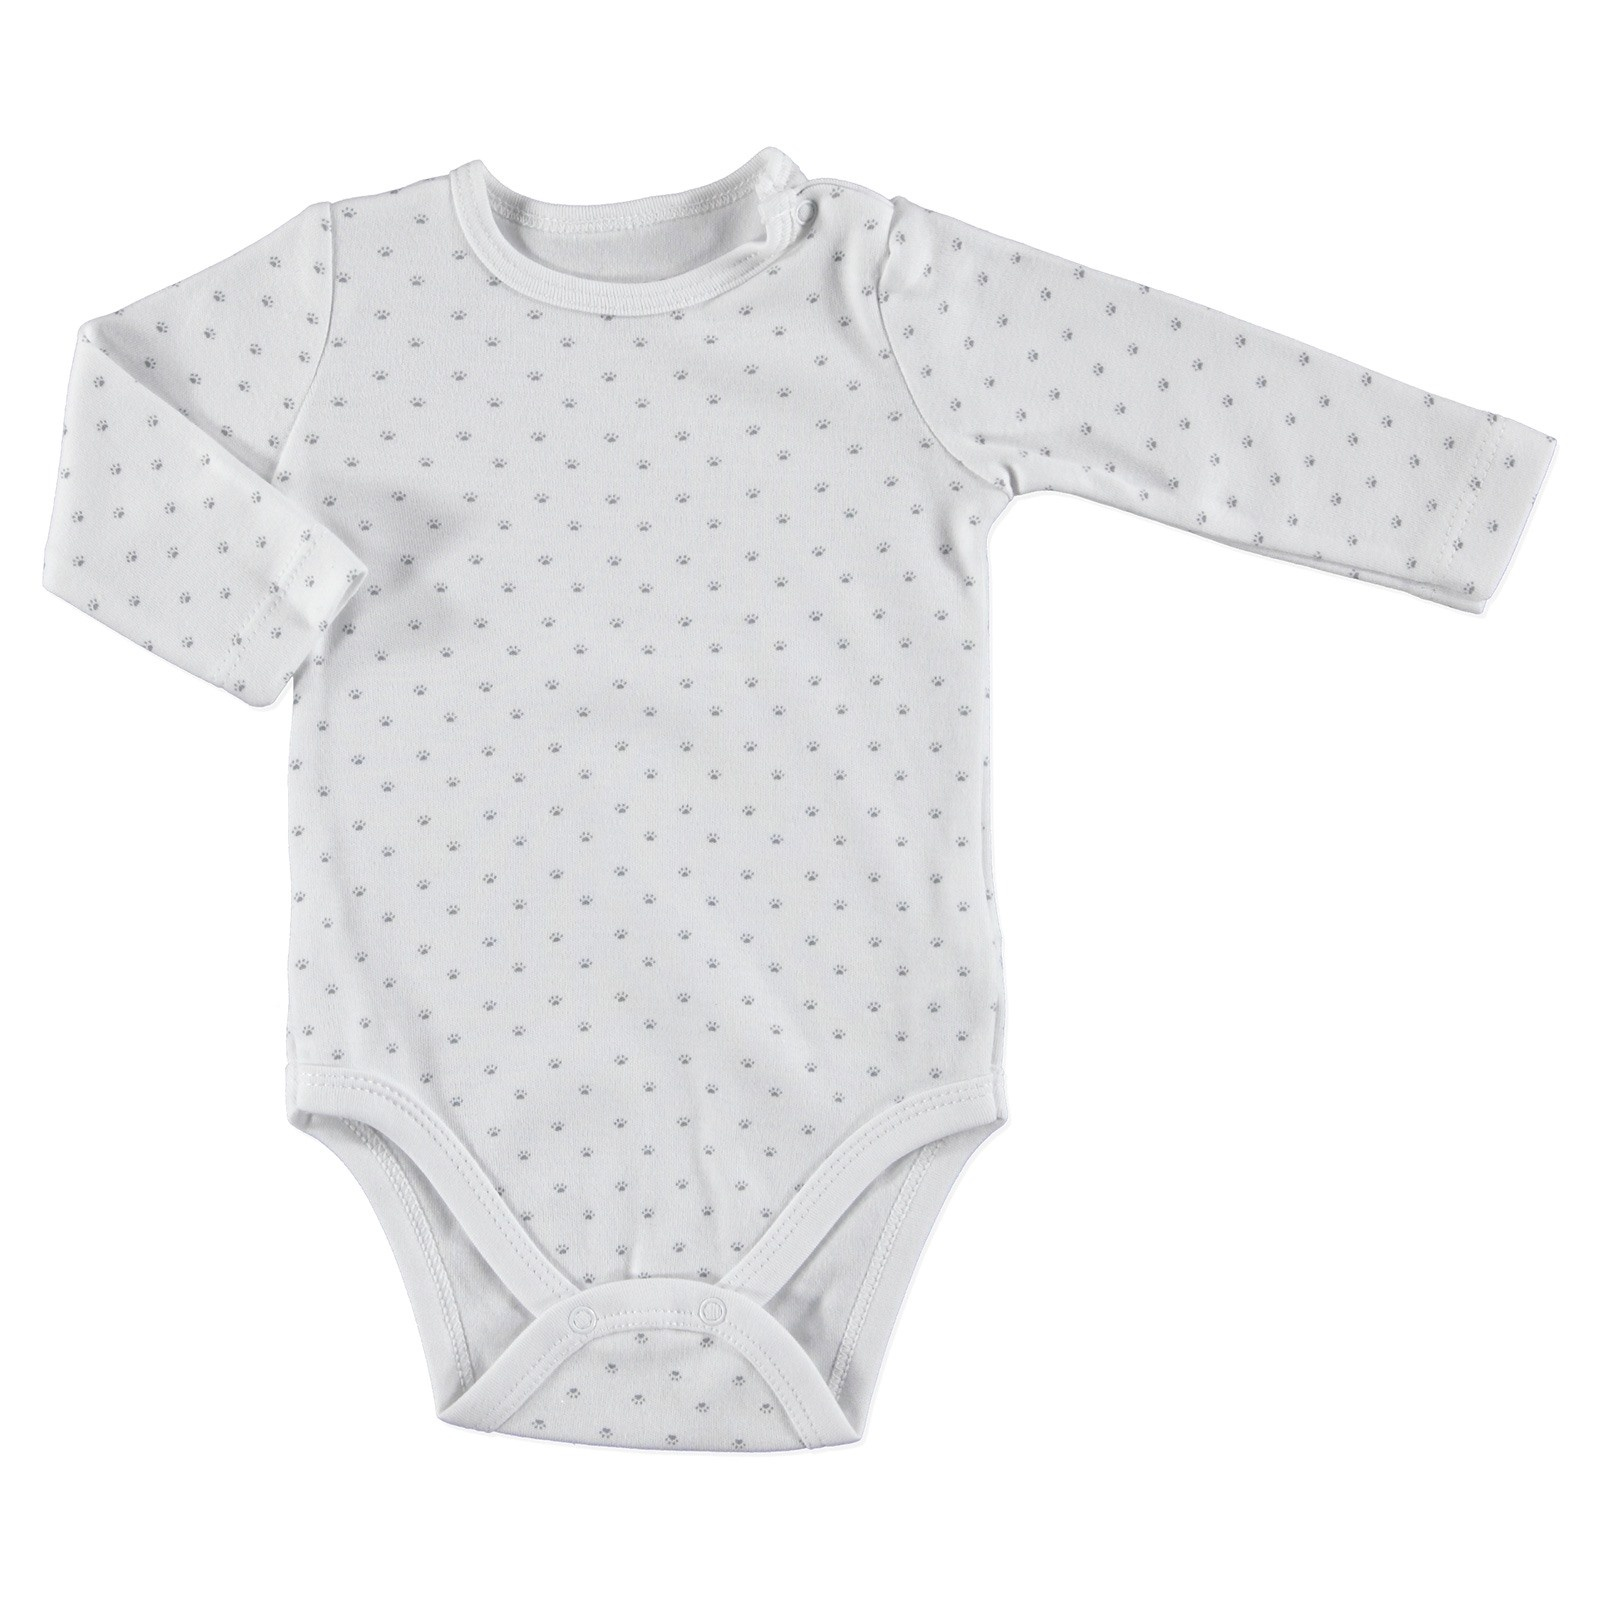 Ebebek HelloBaby Little Cute Paws Baby Long Sleeve Bodysuit